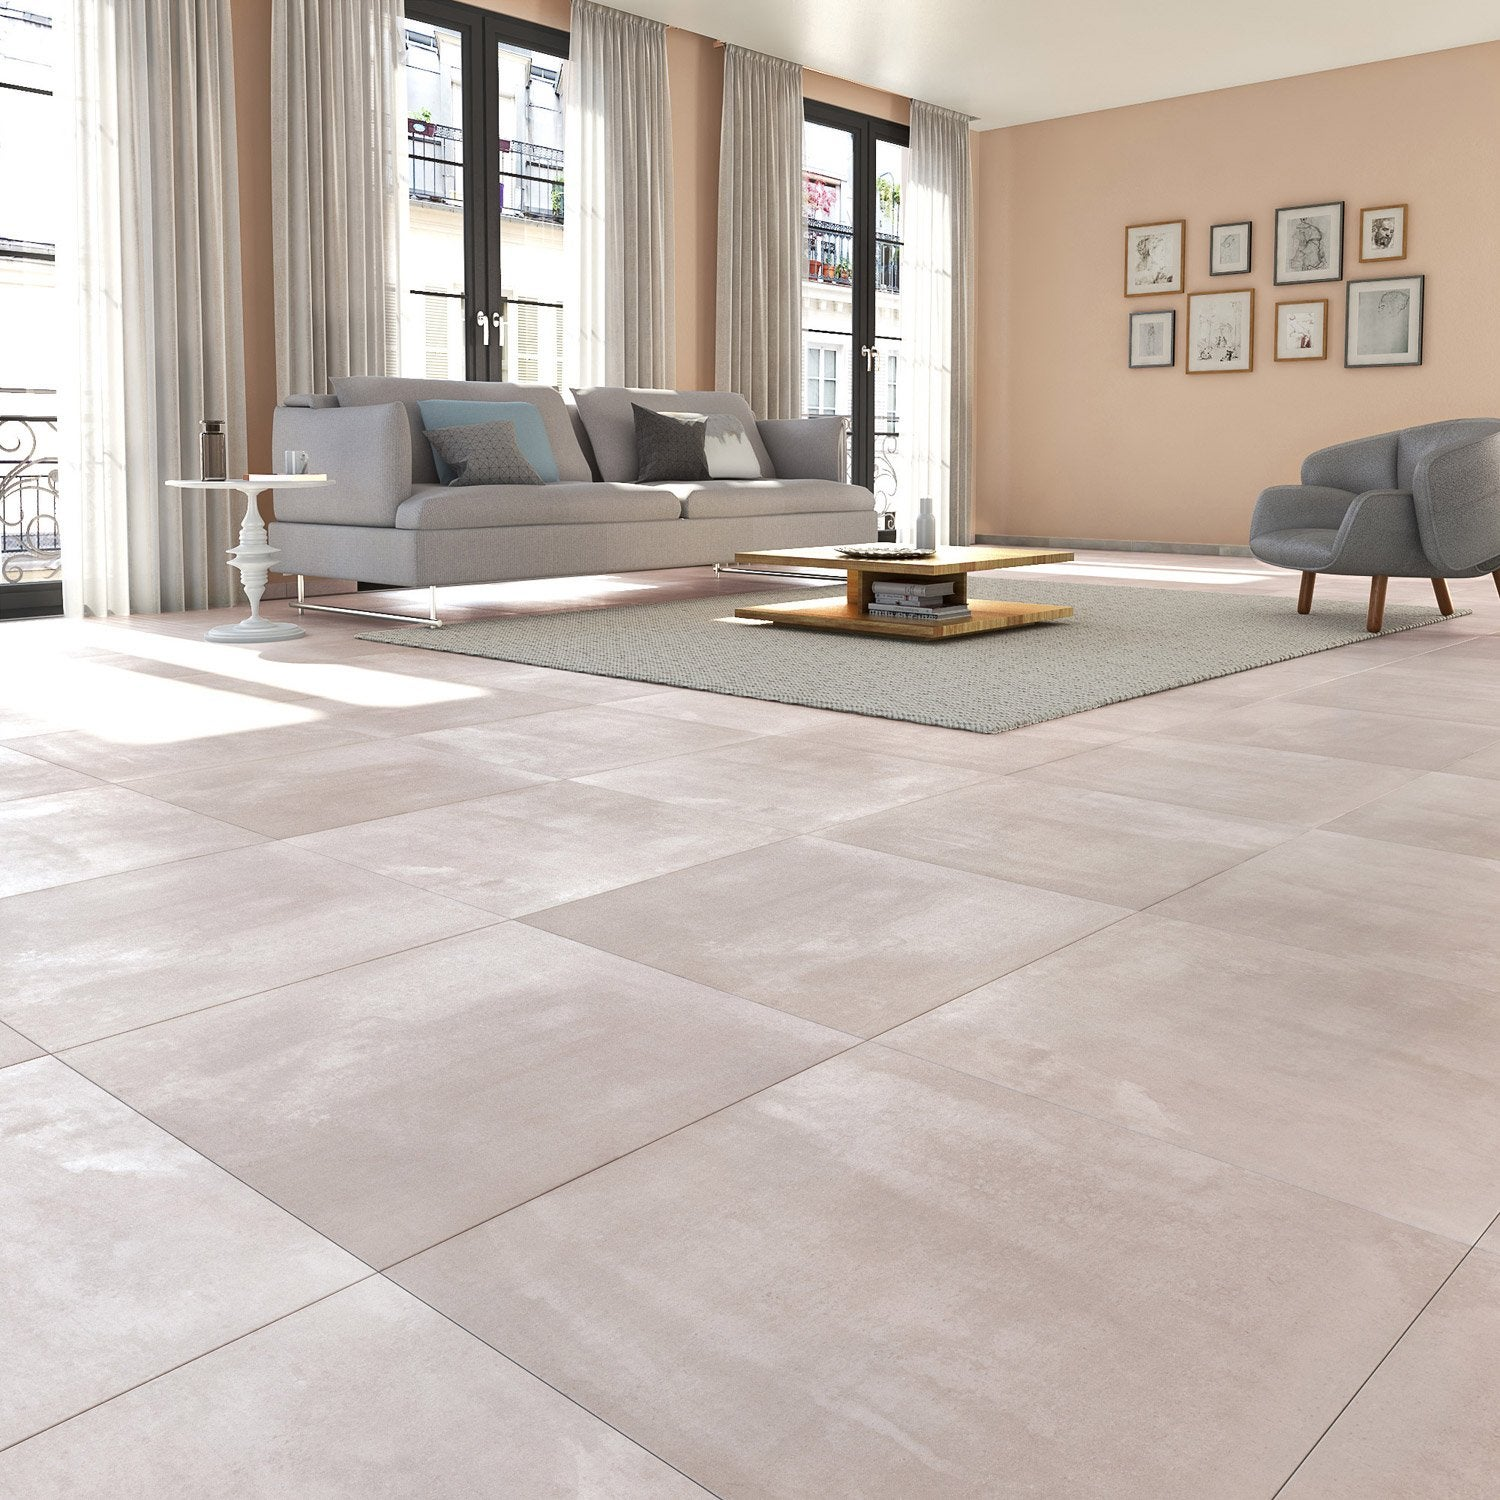 carrelage gris clair maison design apsipcom